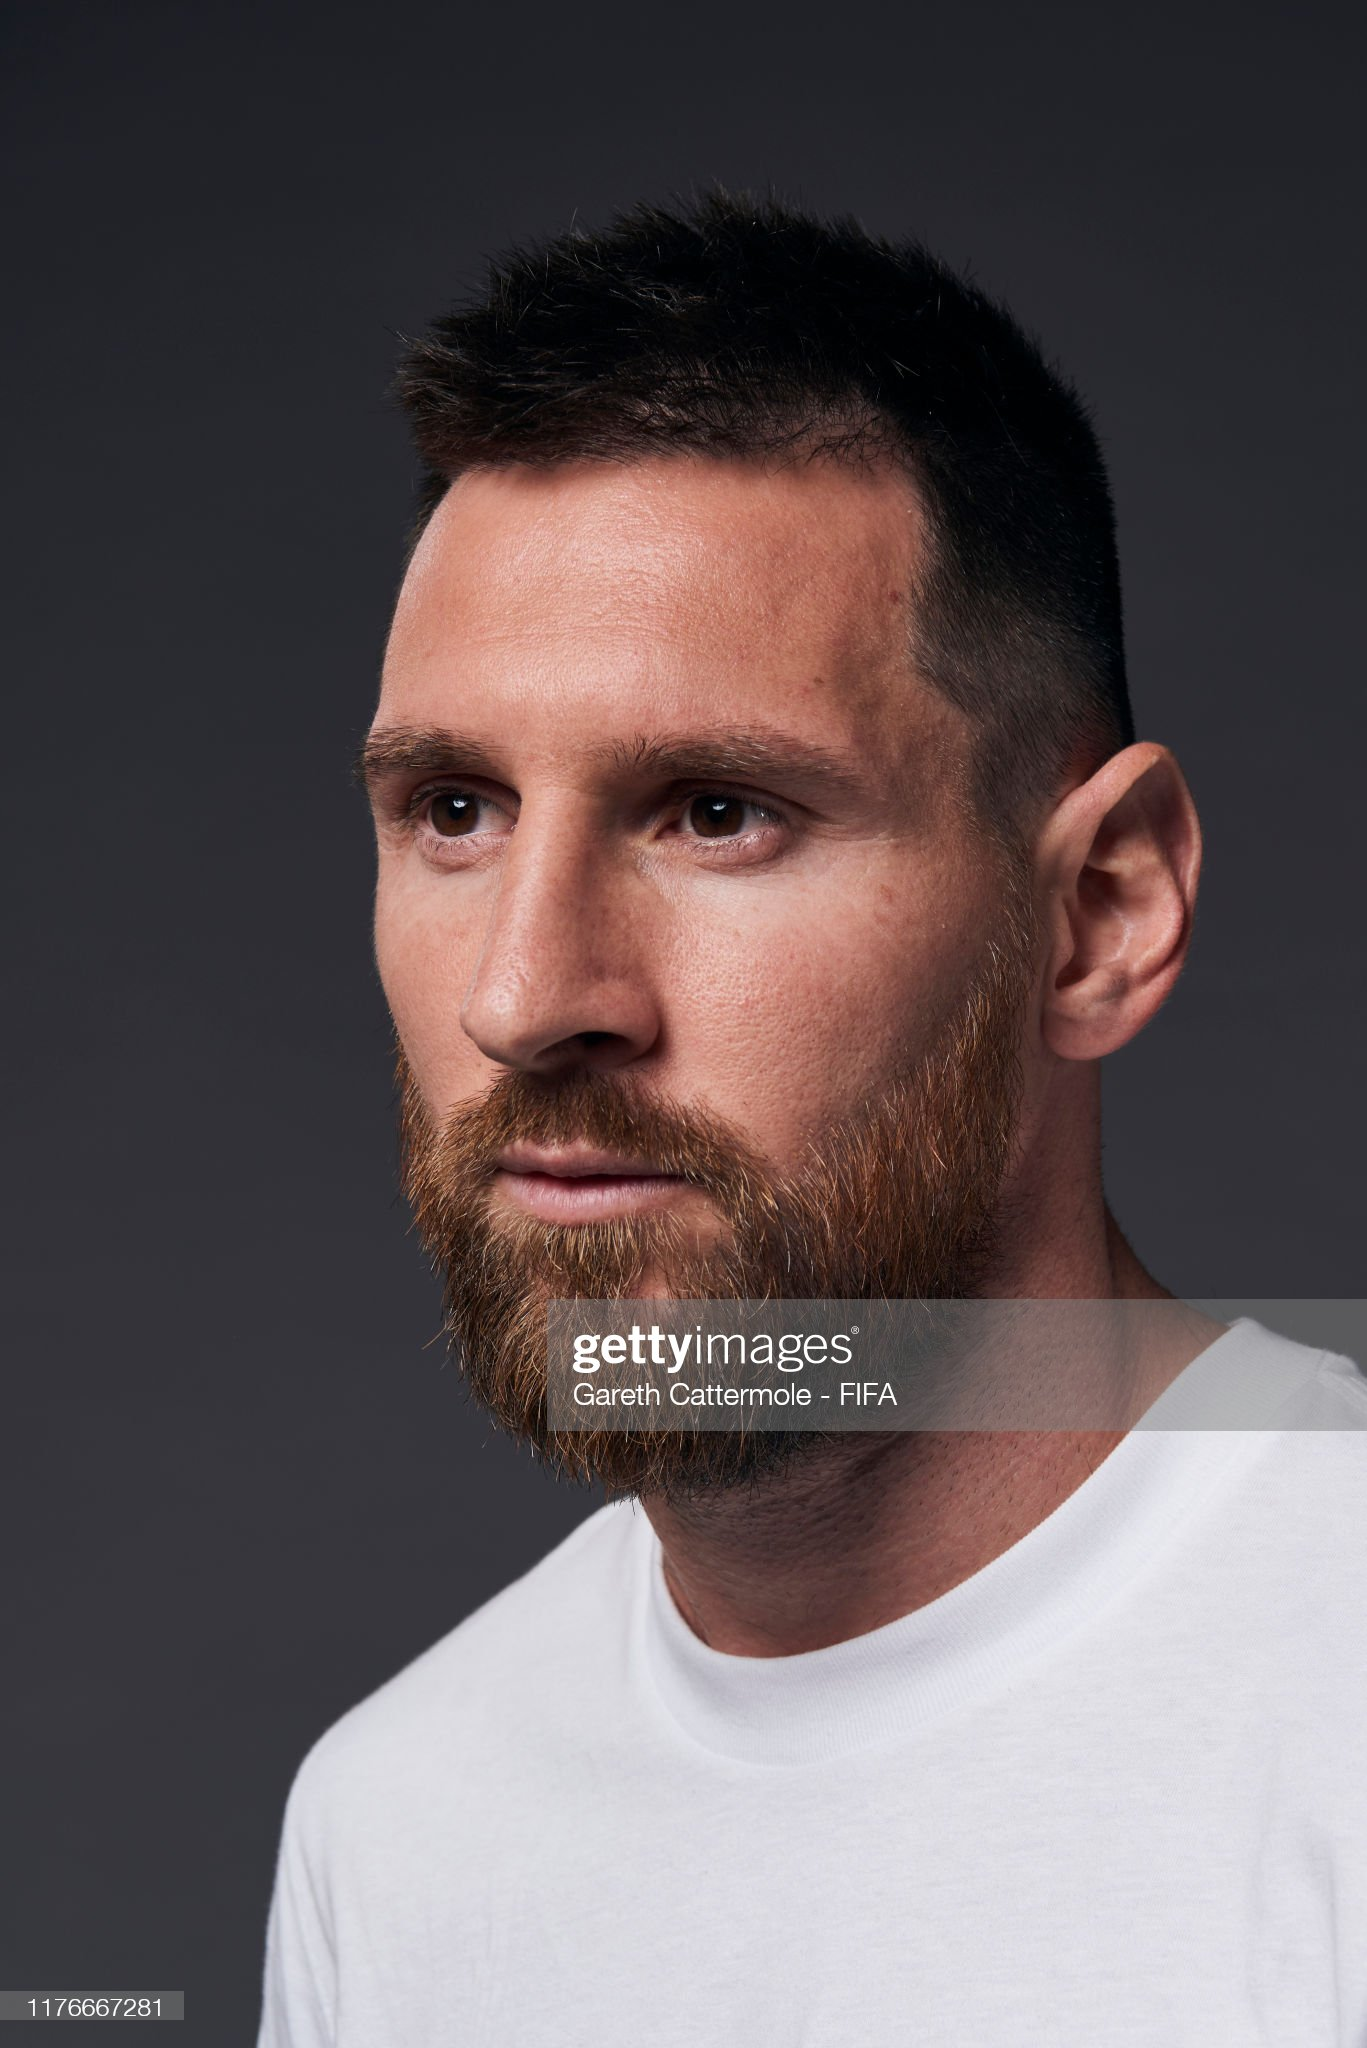 The Best FIFA Football Awards 2019 The-best-fifa-mens-player-award-finalist-lionel-messi-of-barcelona-picture-id1176667281?s=2048x2048